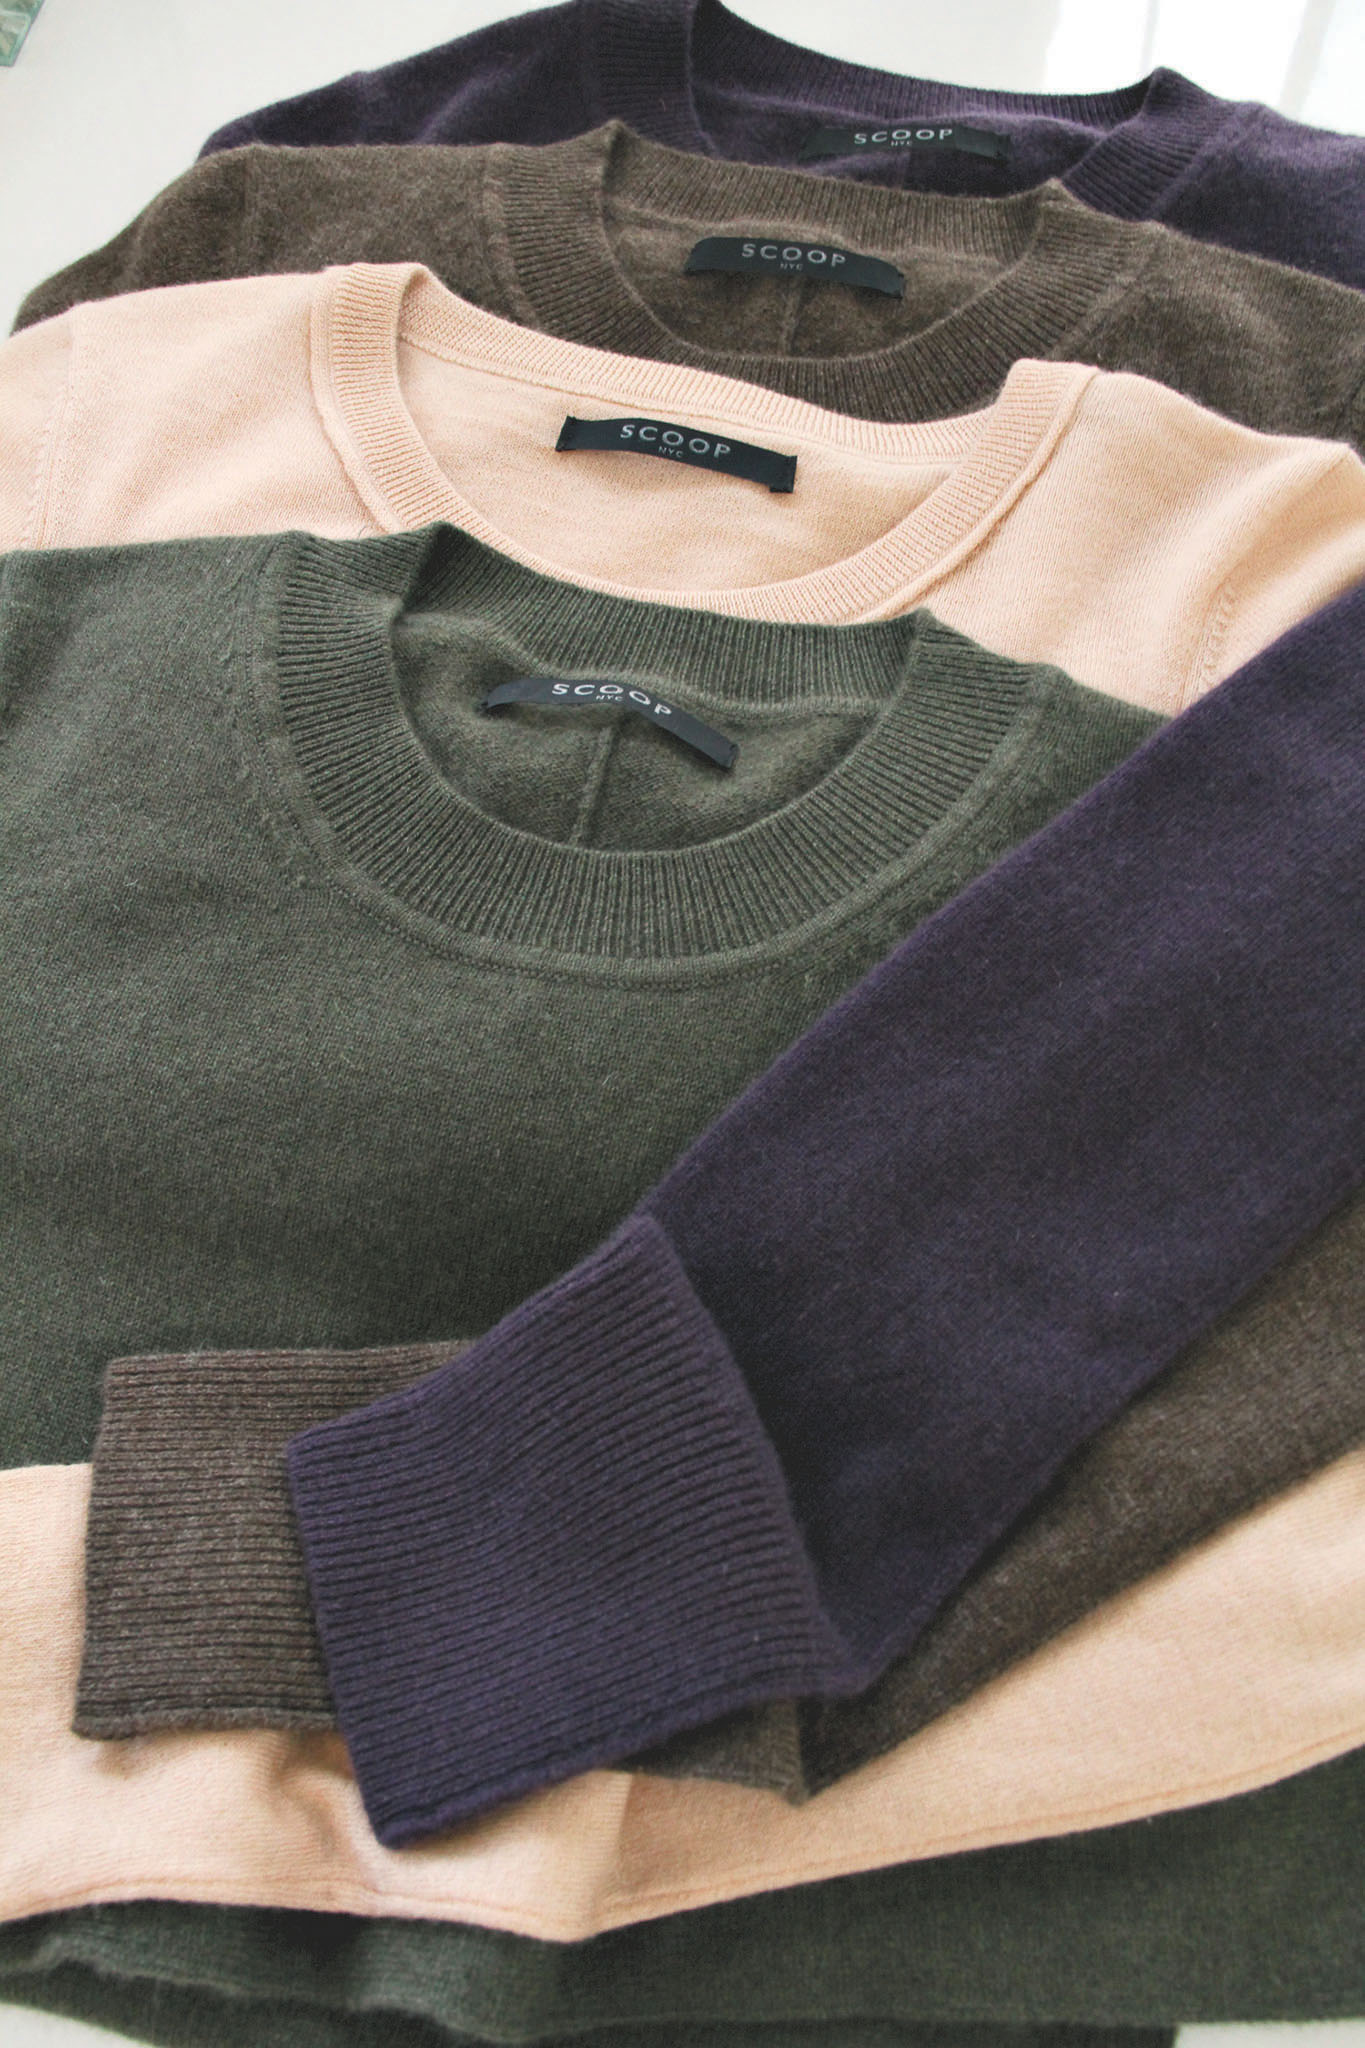 Assortment of cashmere crewneck sweaters by Scoop.